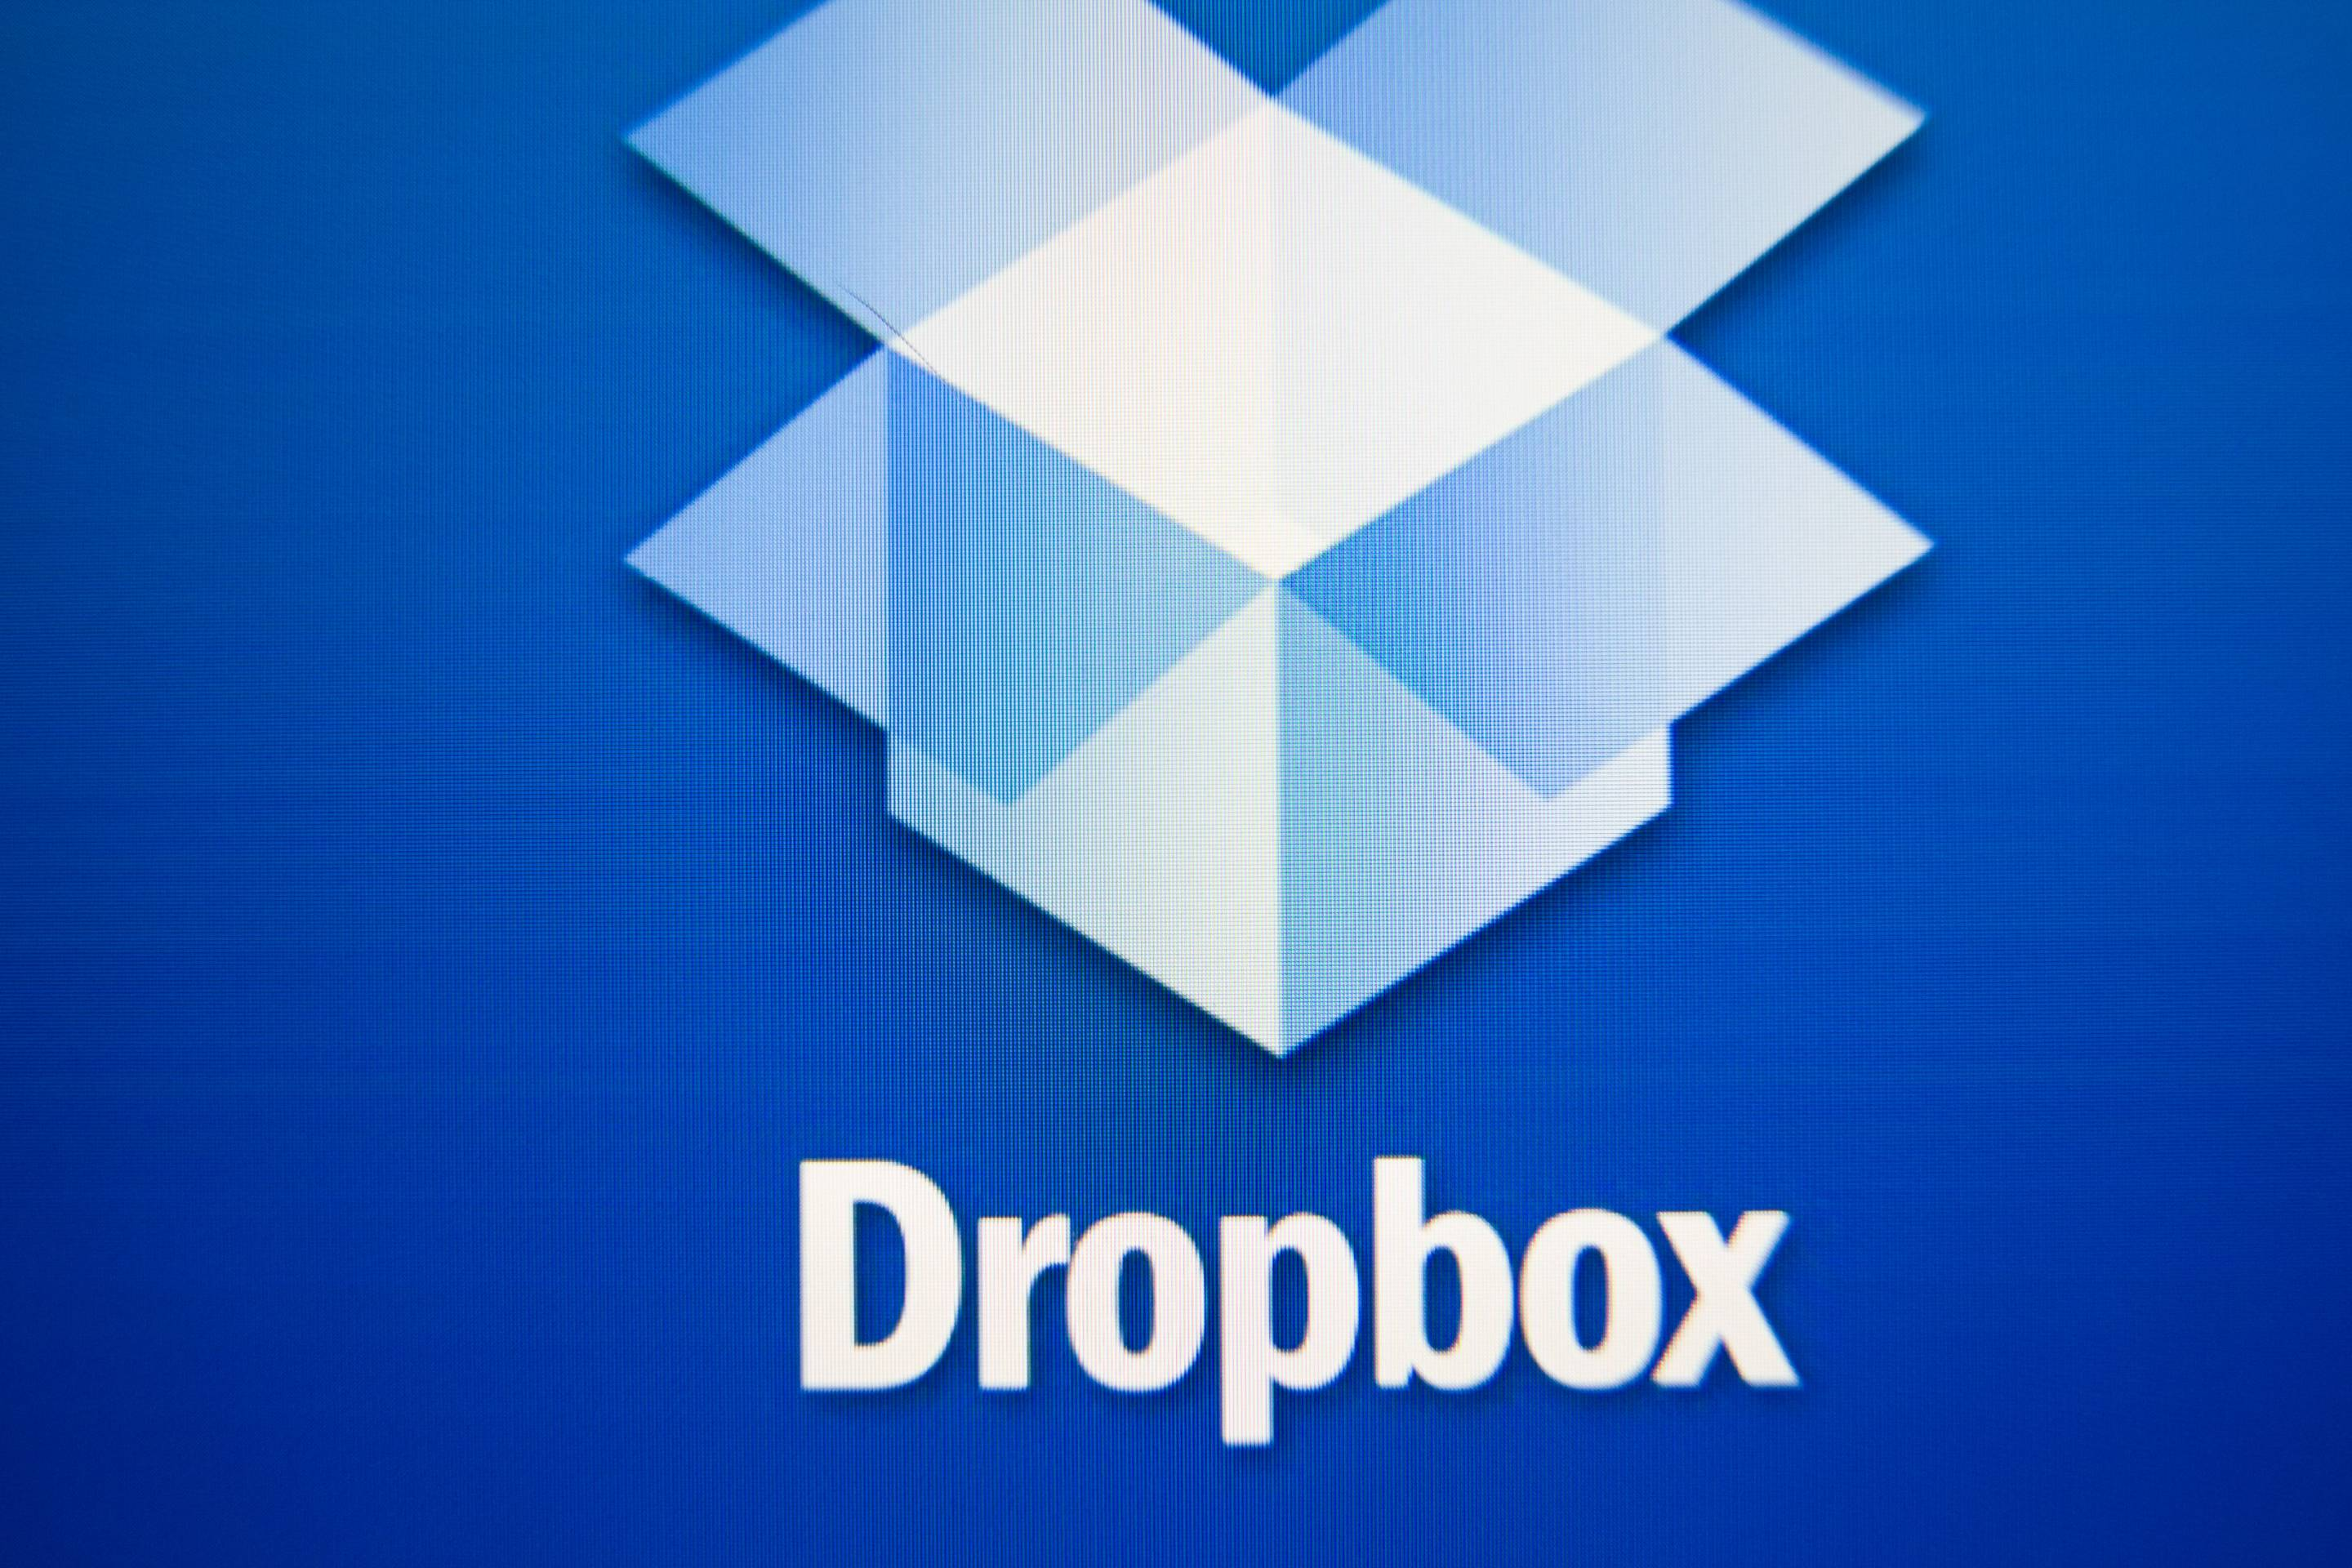 70 million of Dropbox users credentials were hacked